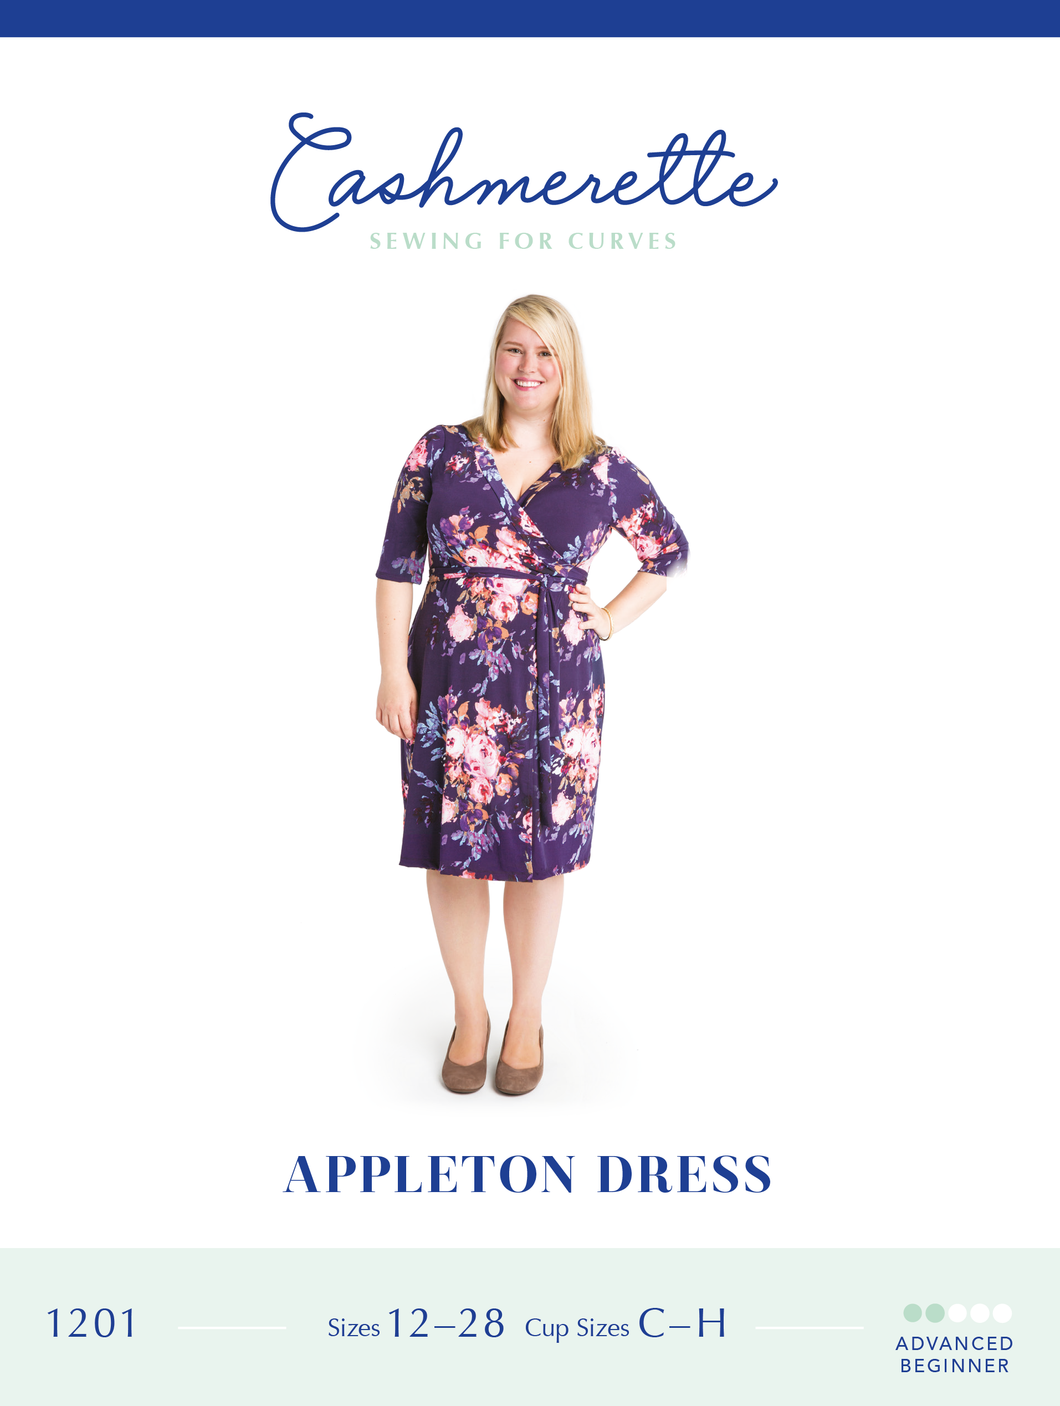 Appleton Dress - Cashmerette